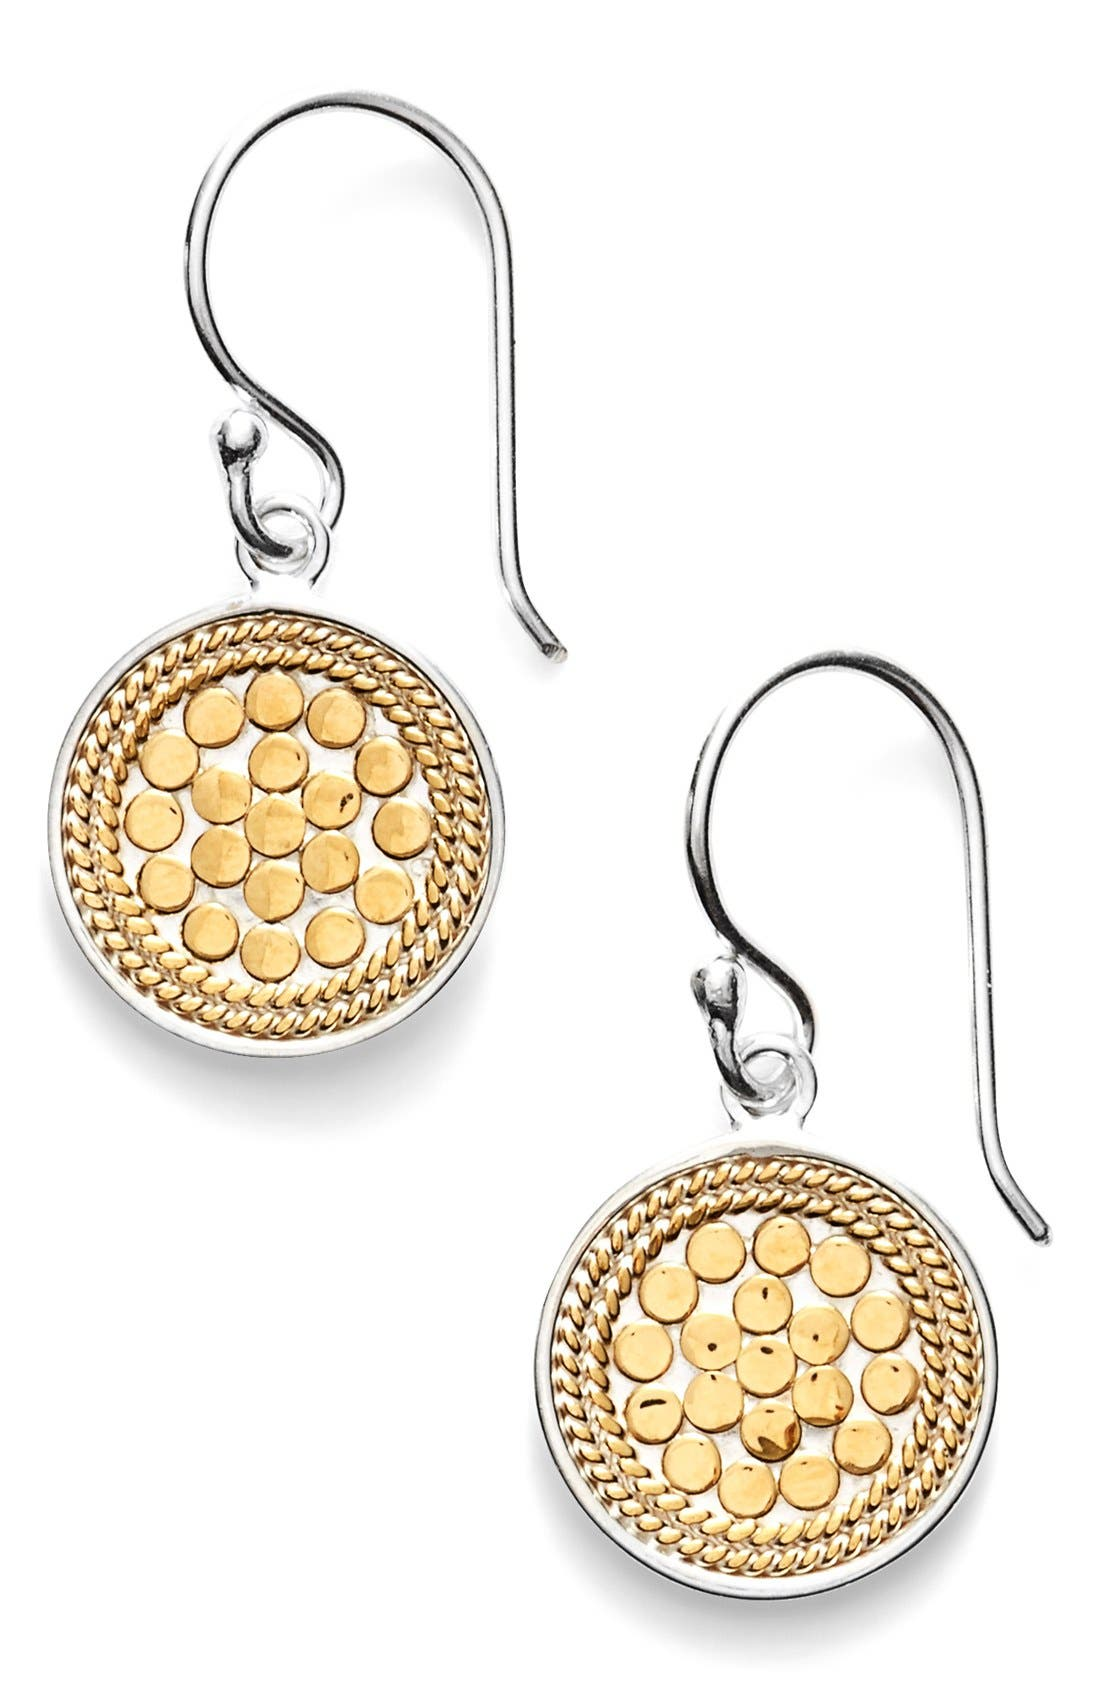 'Gili' Small Drop Earrings,                         Main,                         color, Gold/ Silver